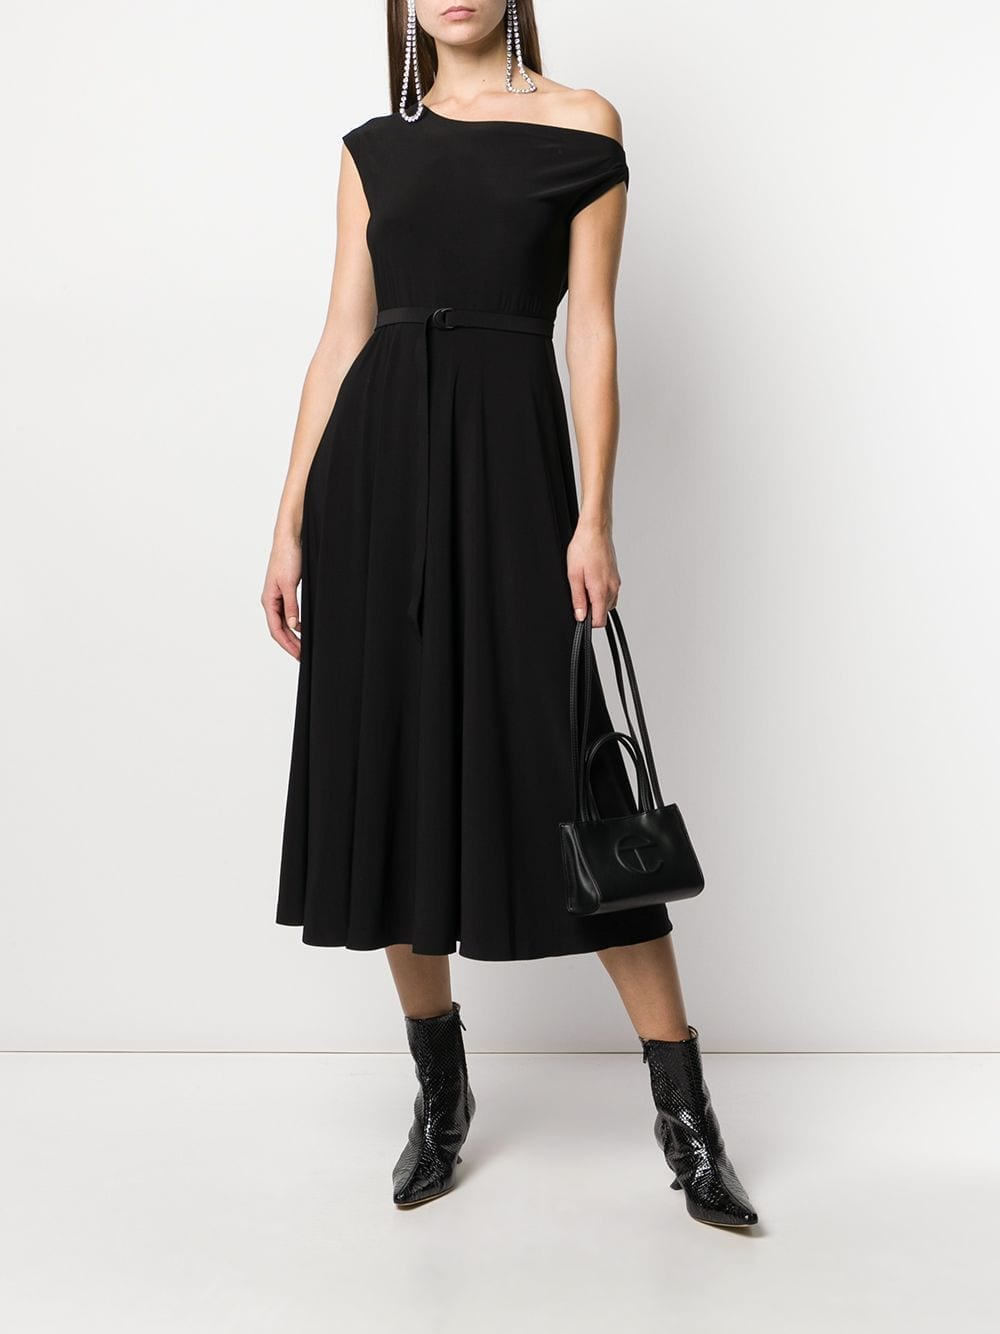 NORMA KAMALI Pleated One Shoulder Dress